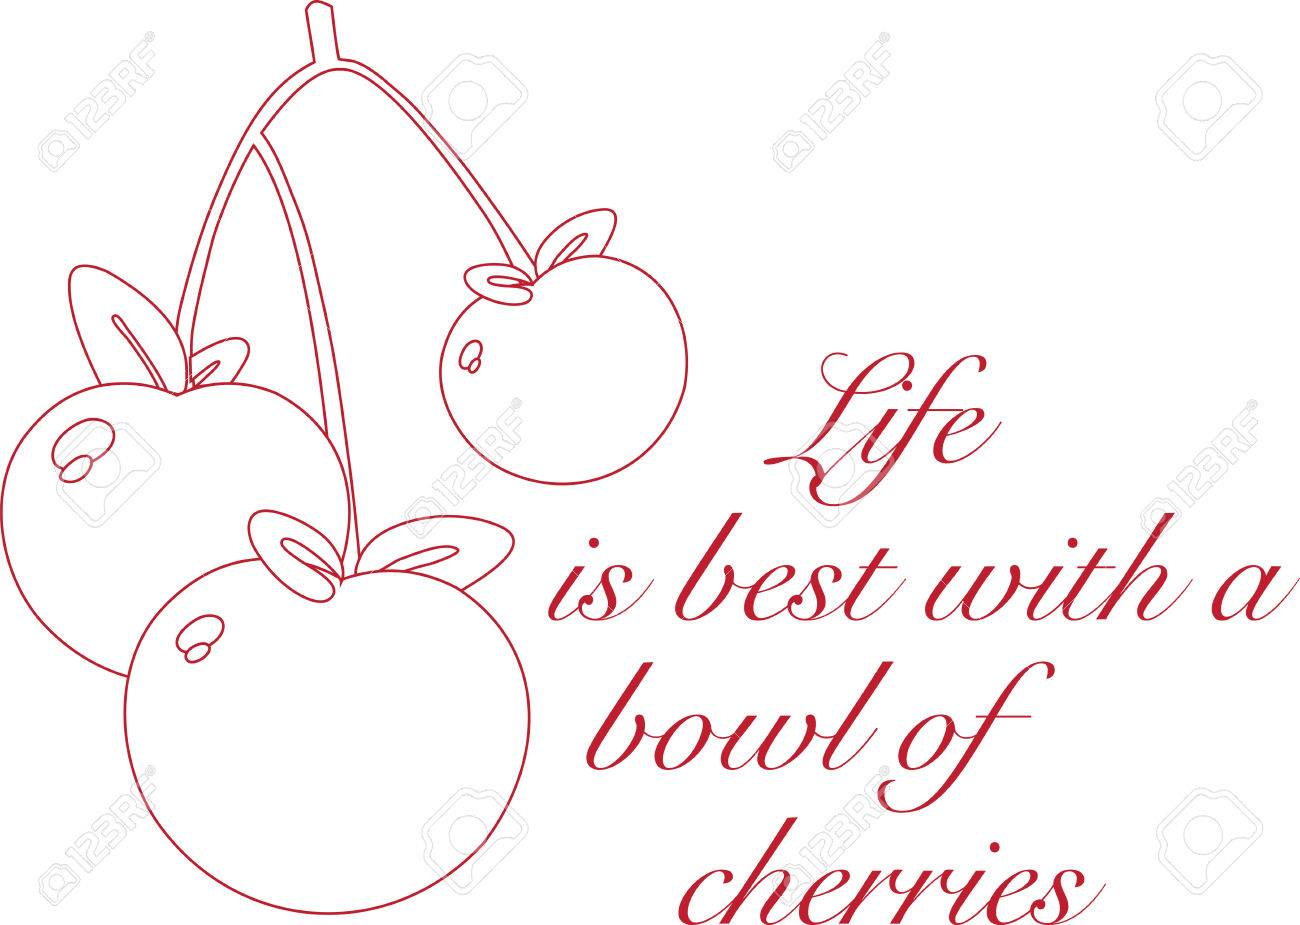 Enjoy The Colorful Cherry Outline Designs By Embroidery Patterns ...